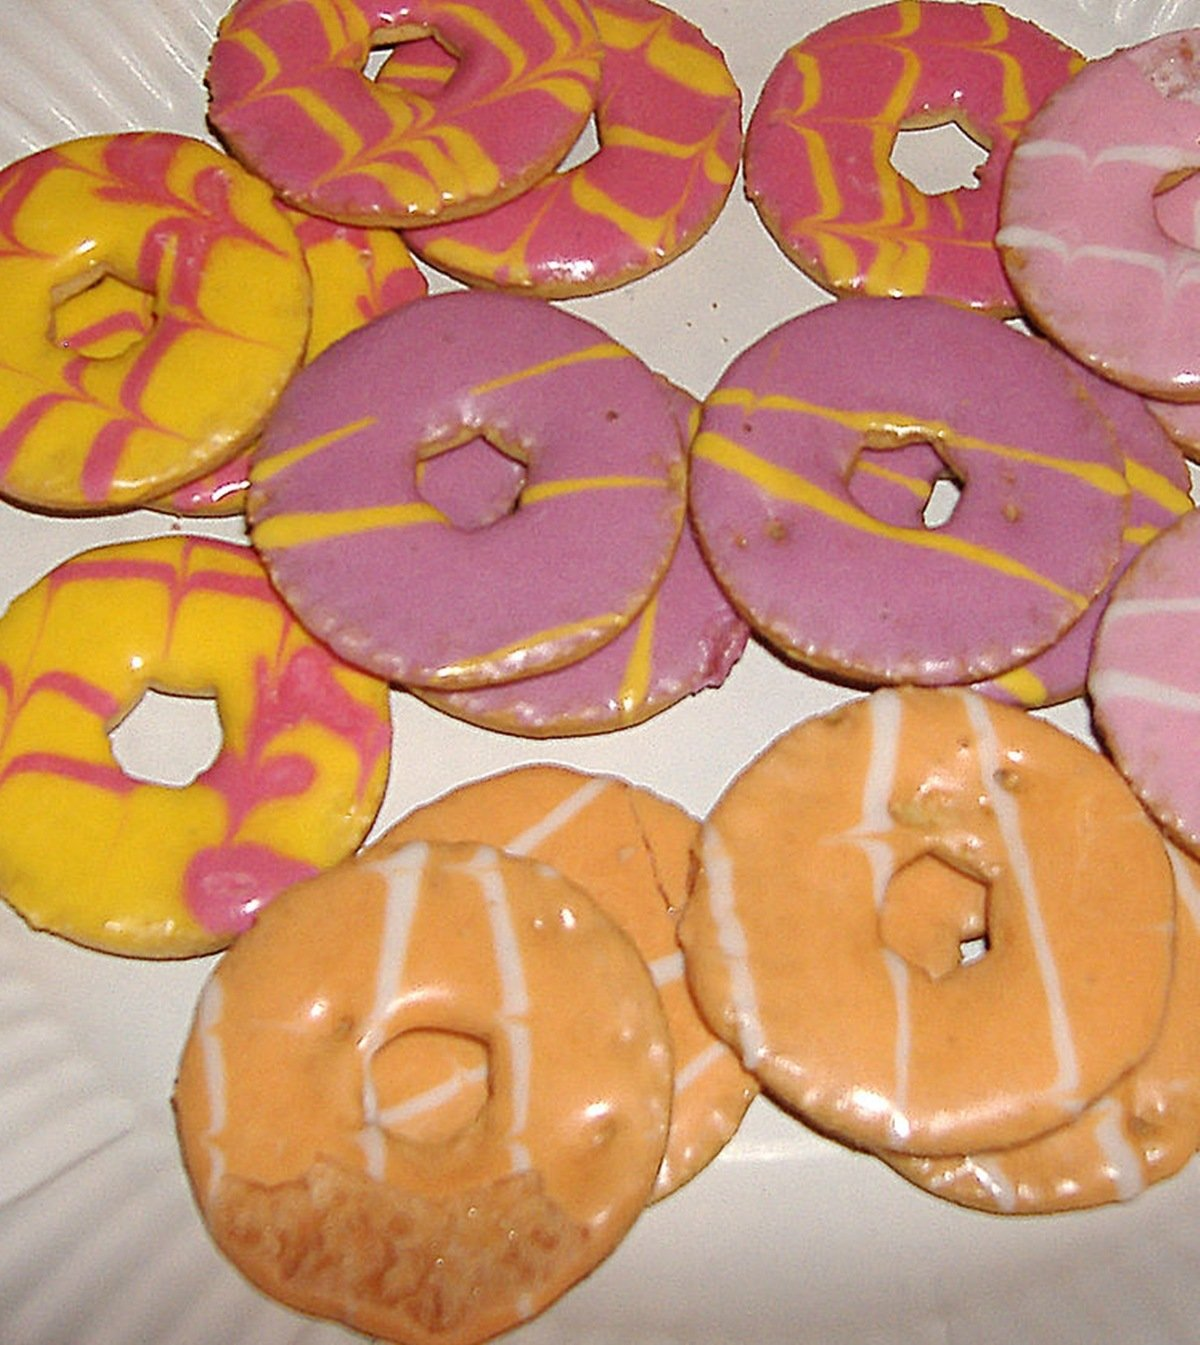 7 19 14 Yummy Biscuits We Loved Eating As Kids